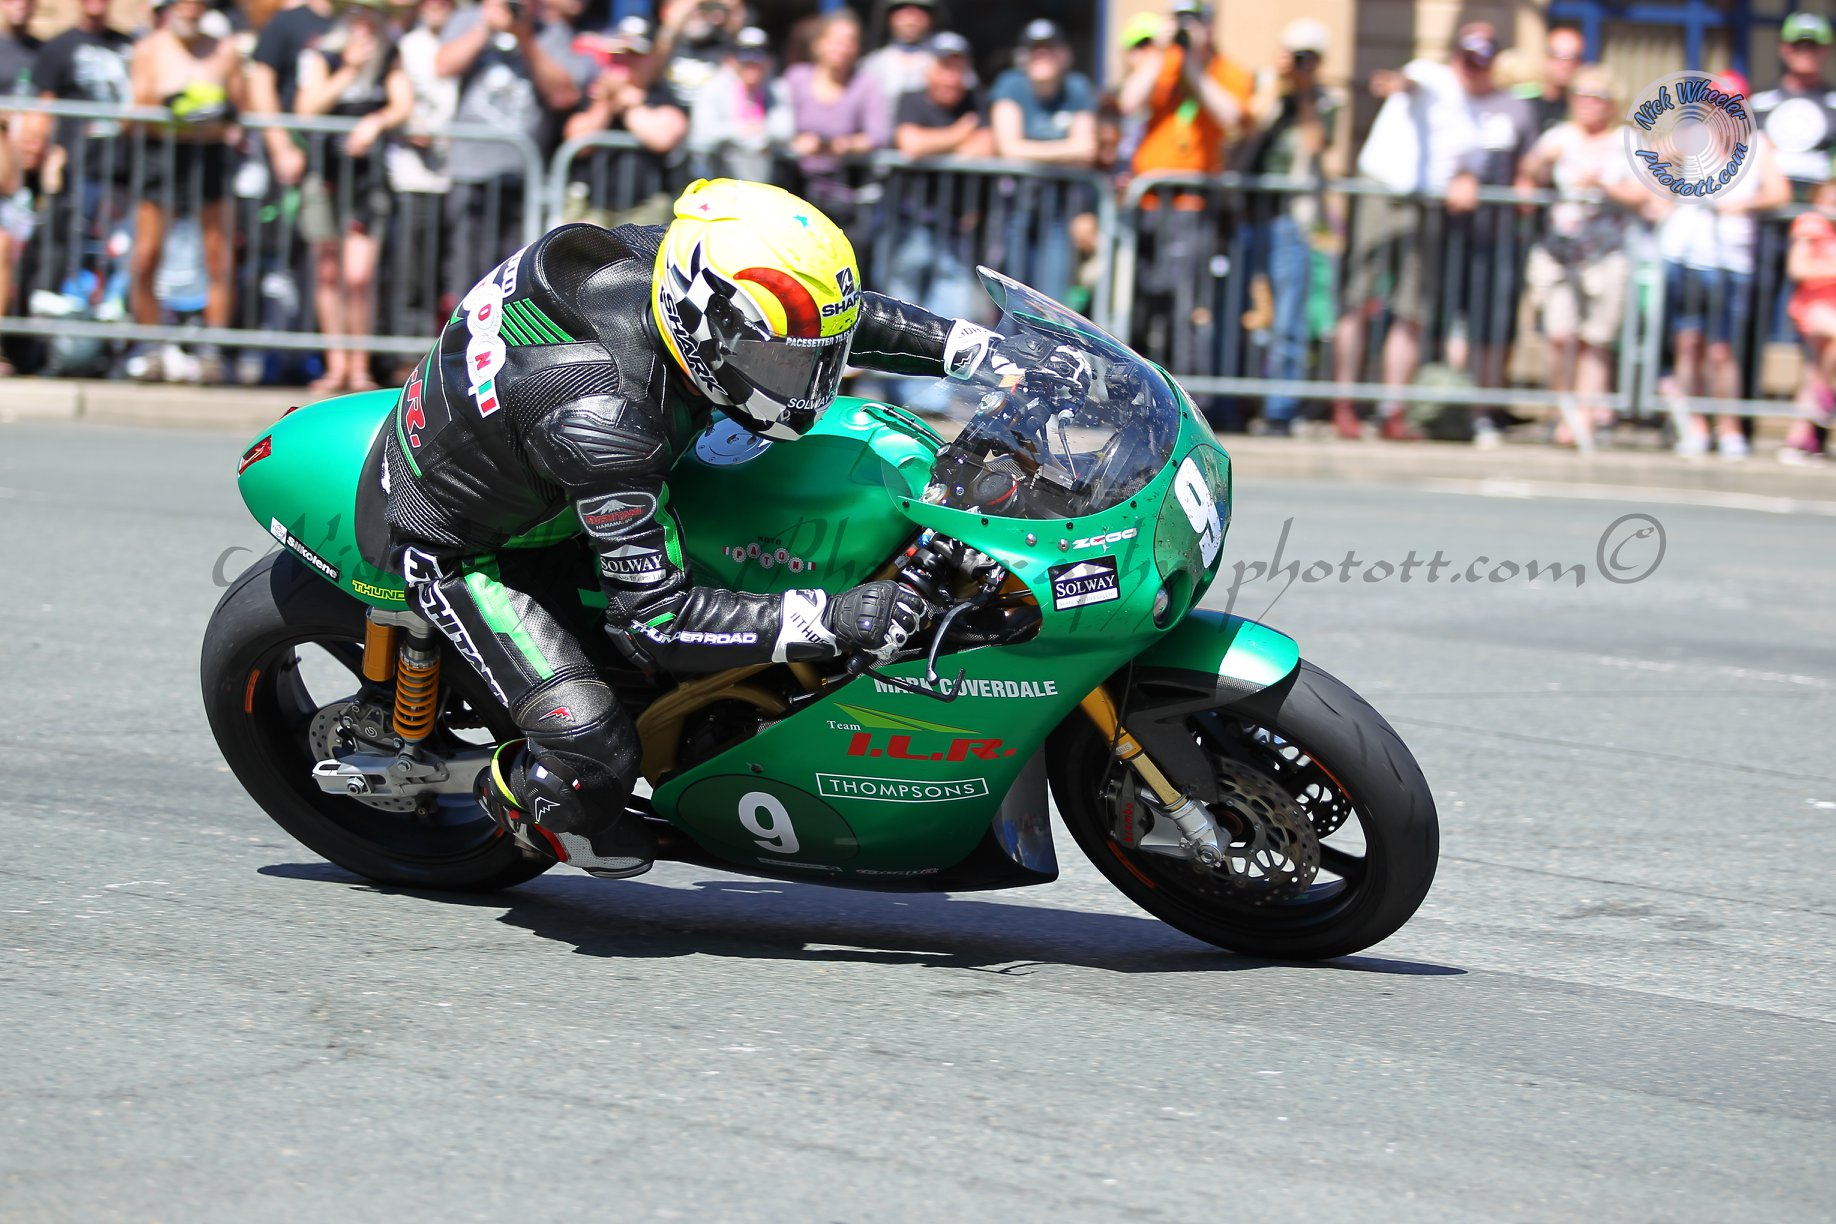 Paton Factor For Dundrod Legend Lougher At MCE Insurance Ulster Grand Prix